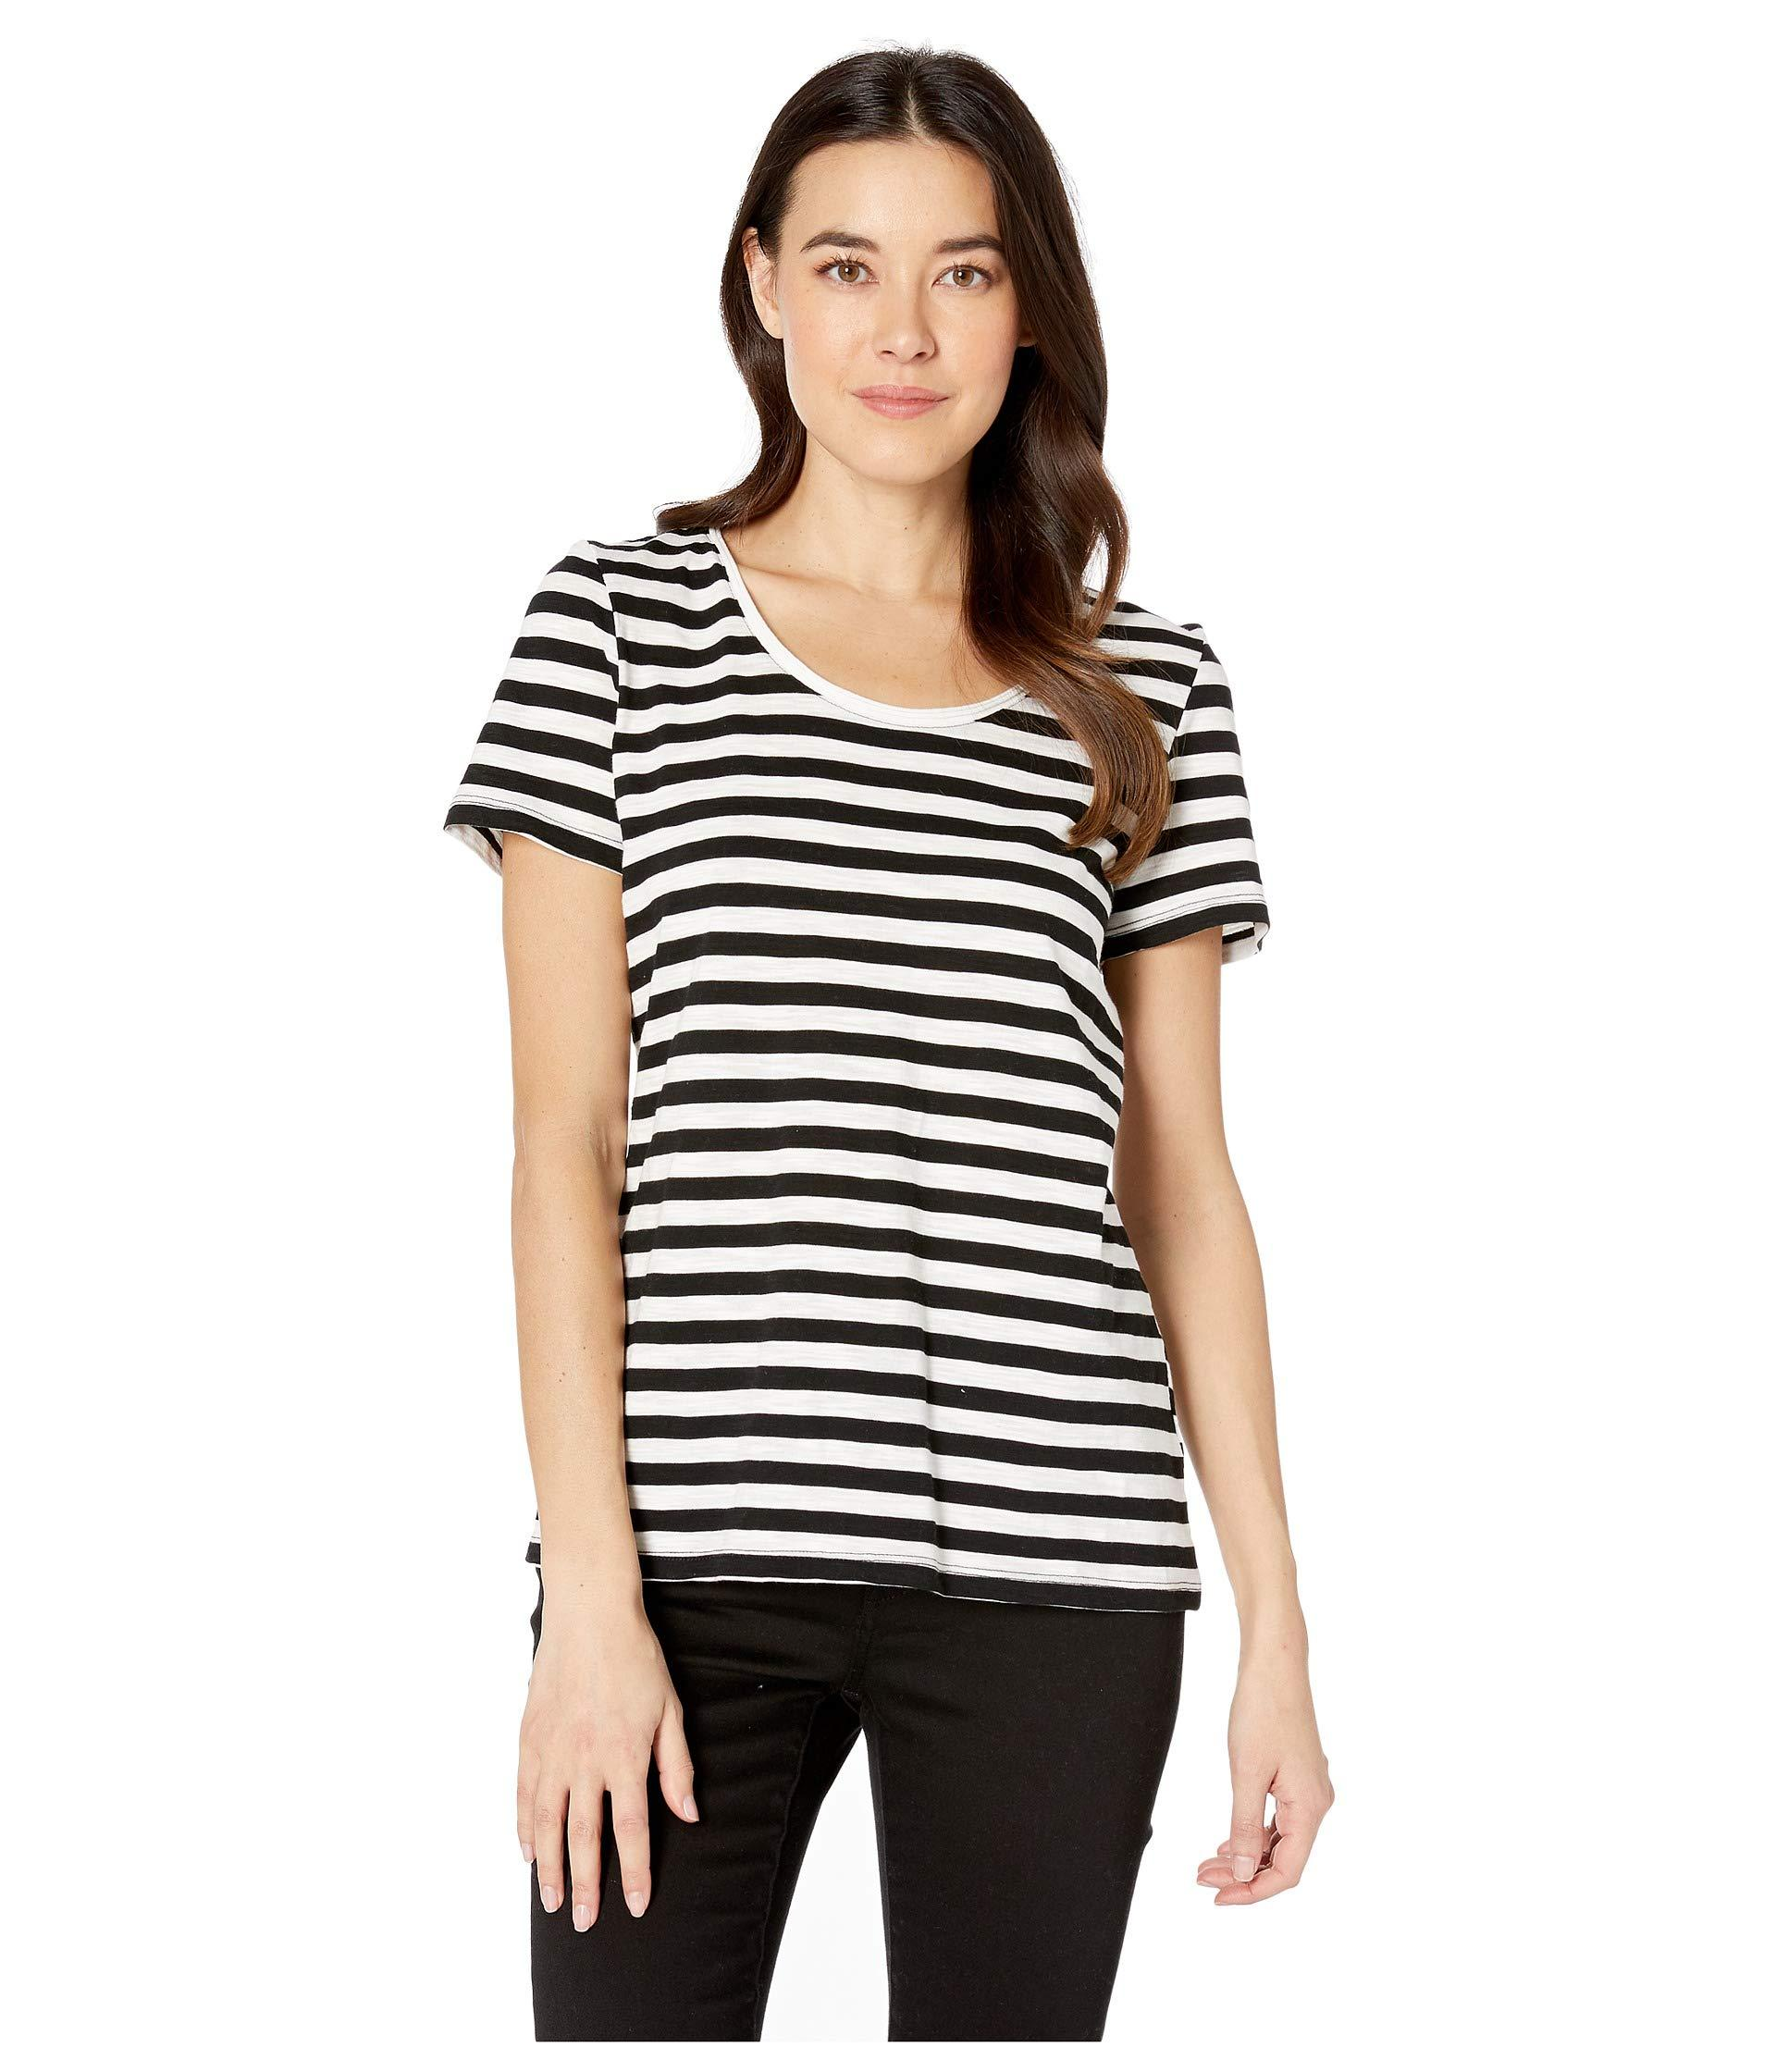 b86fe2c8a1 Lyst - Two By Vince Camuto Short Sleeve Amour City Stripe Scoop Neck ...